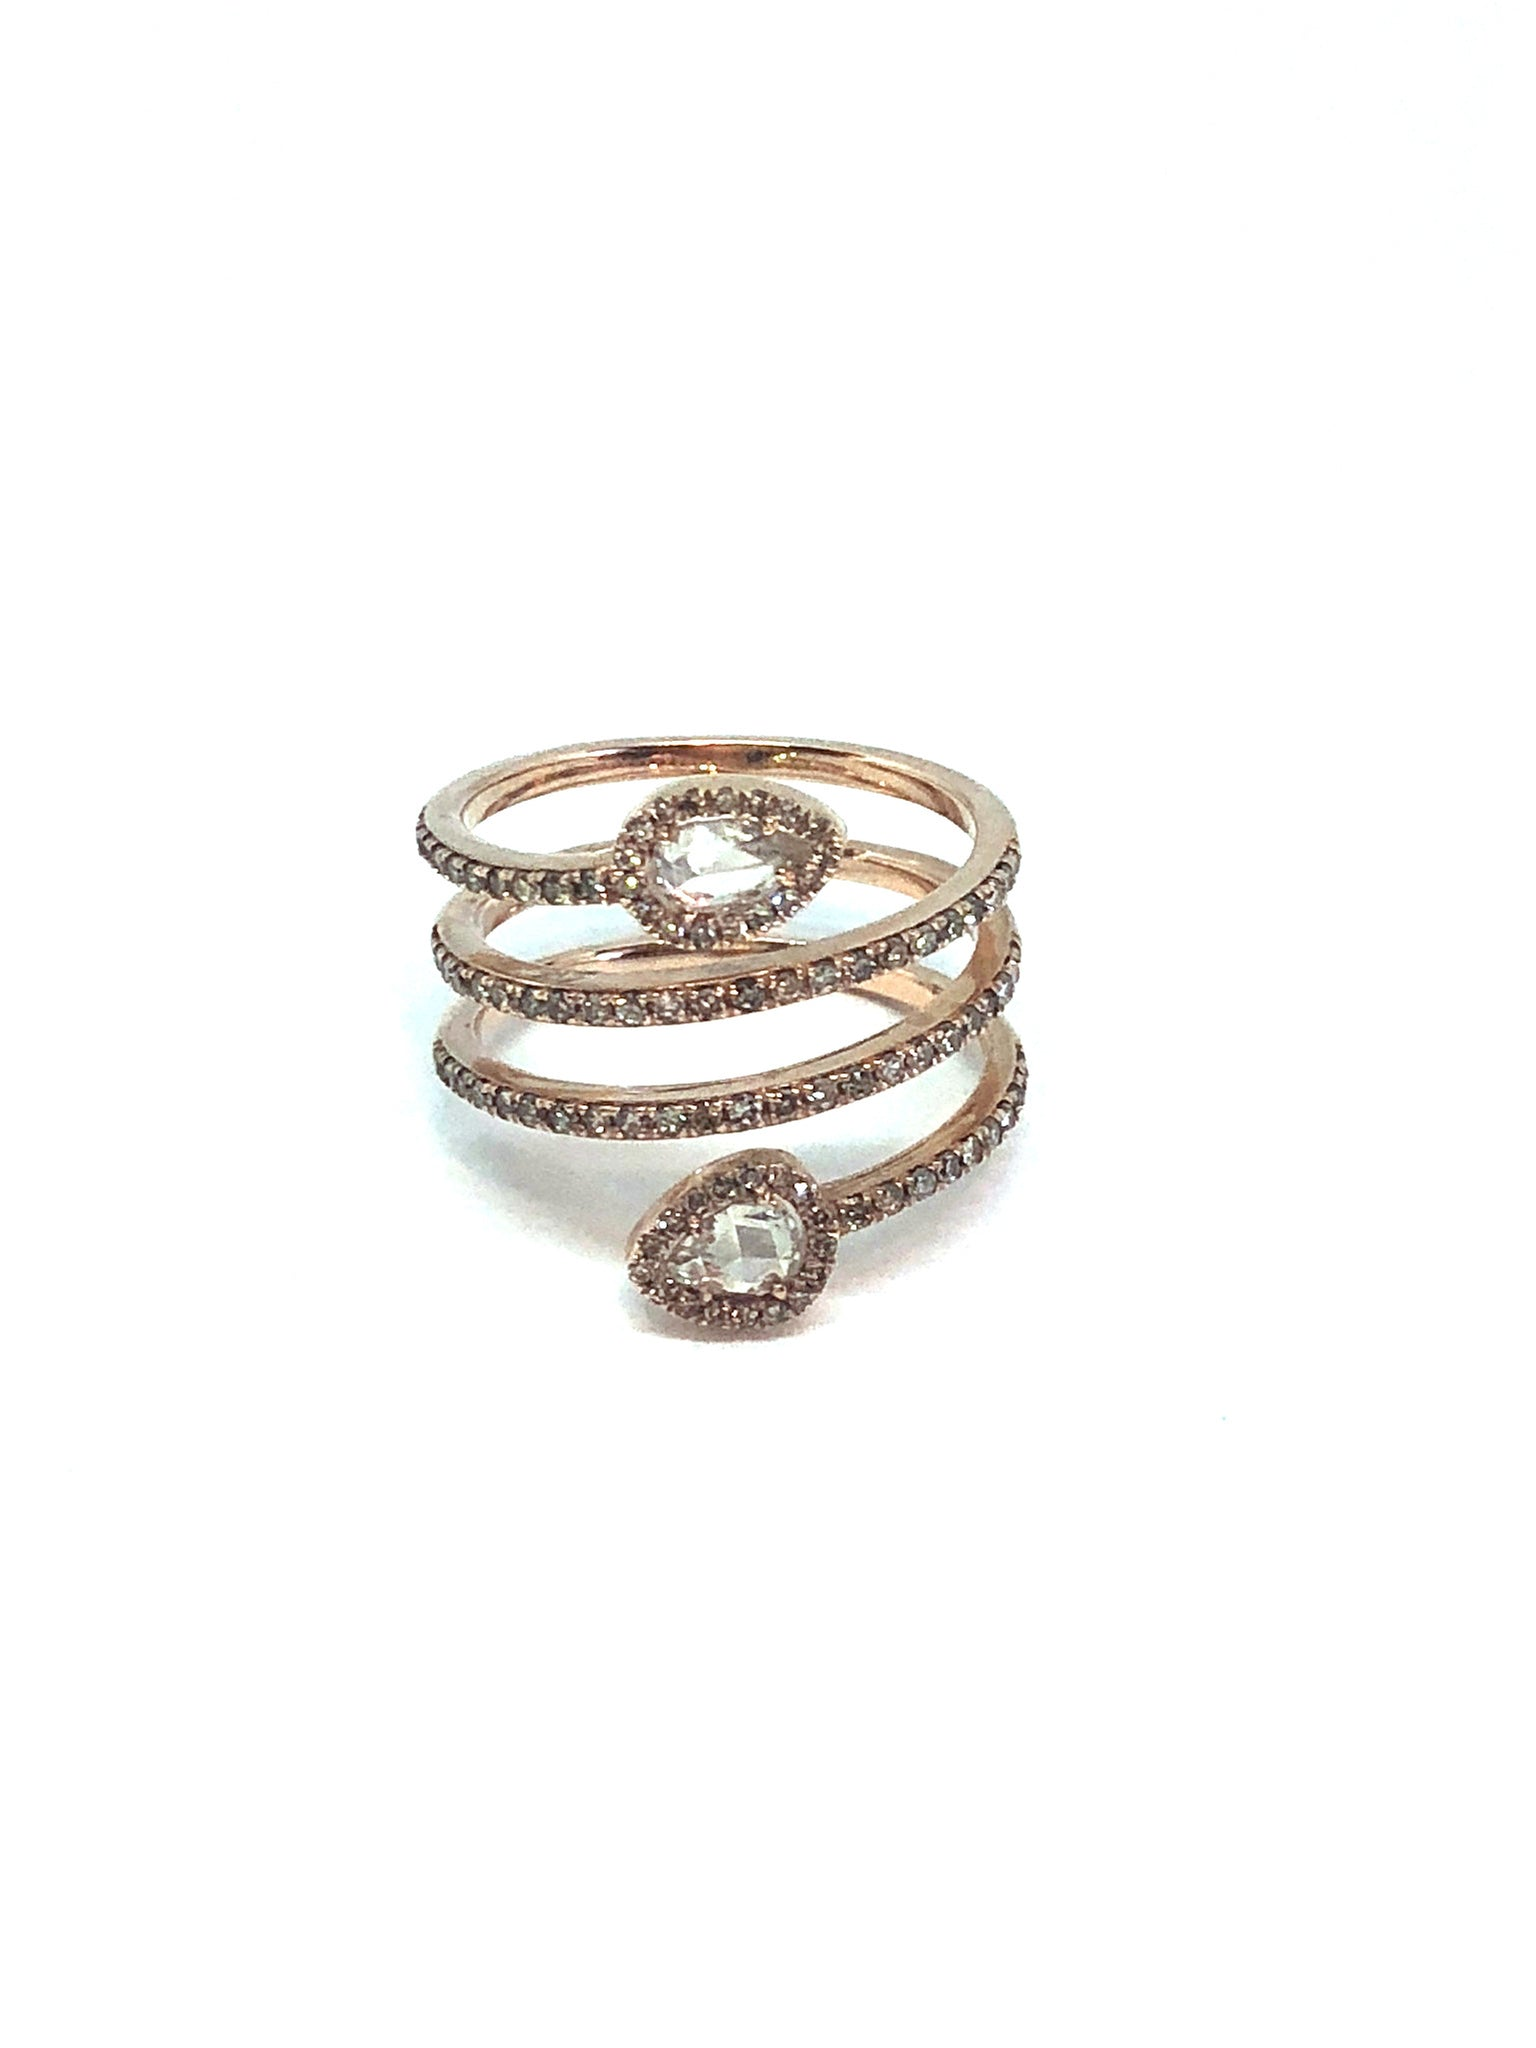 Rose Gold and Diamond Wrap Ring with Diamond Accent Stones